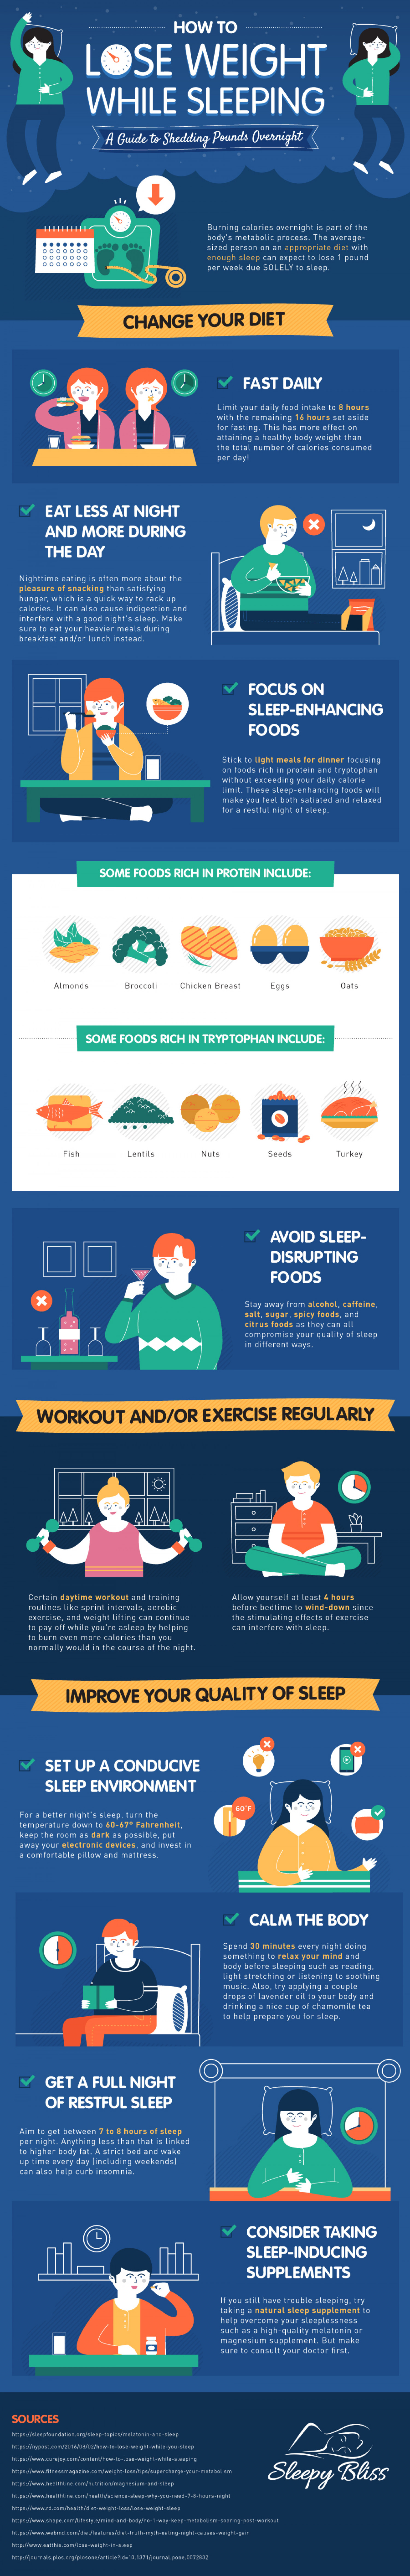 How to Lose Weight While Sleeping Infographic